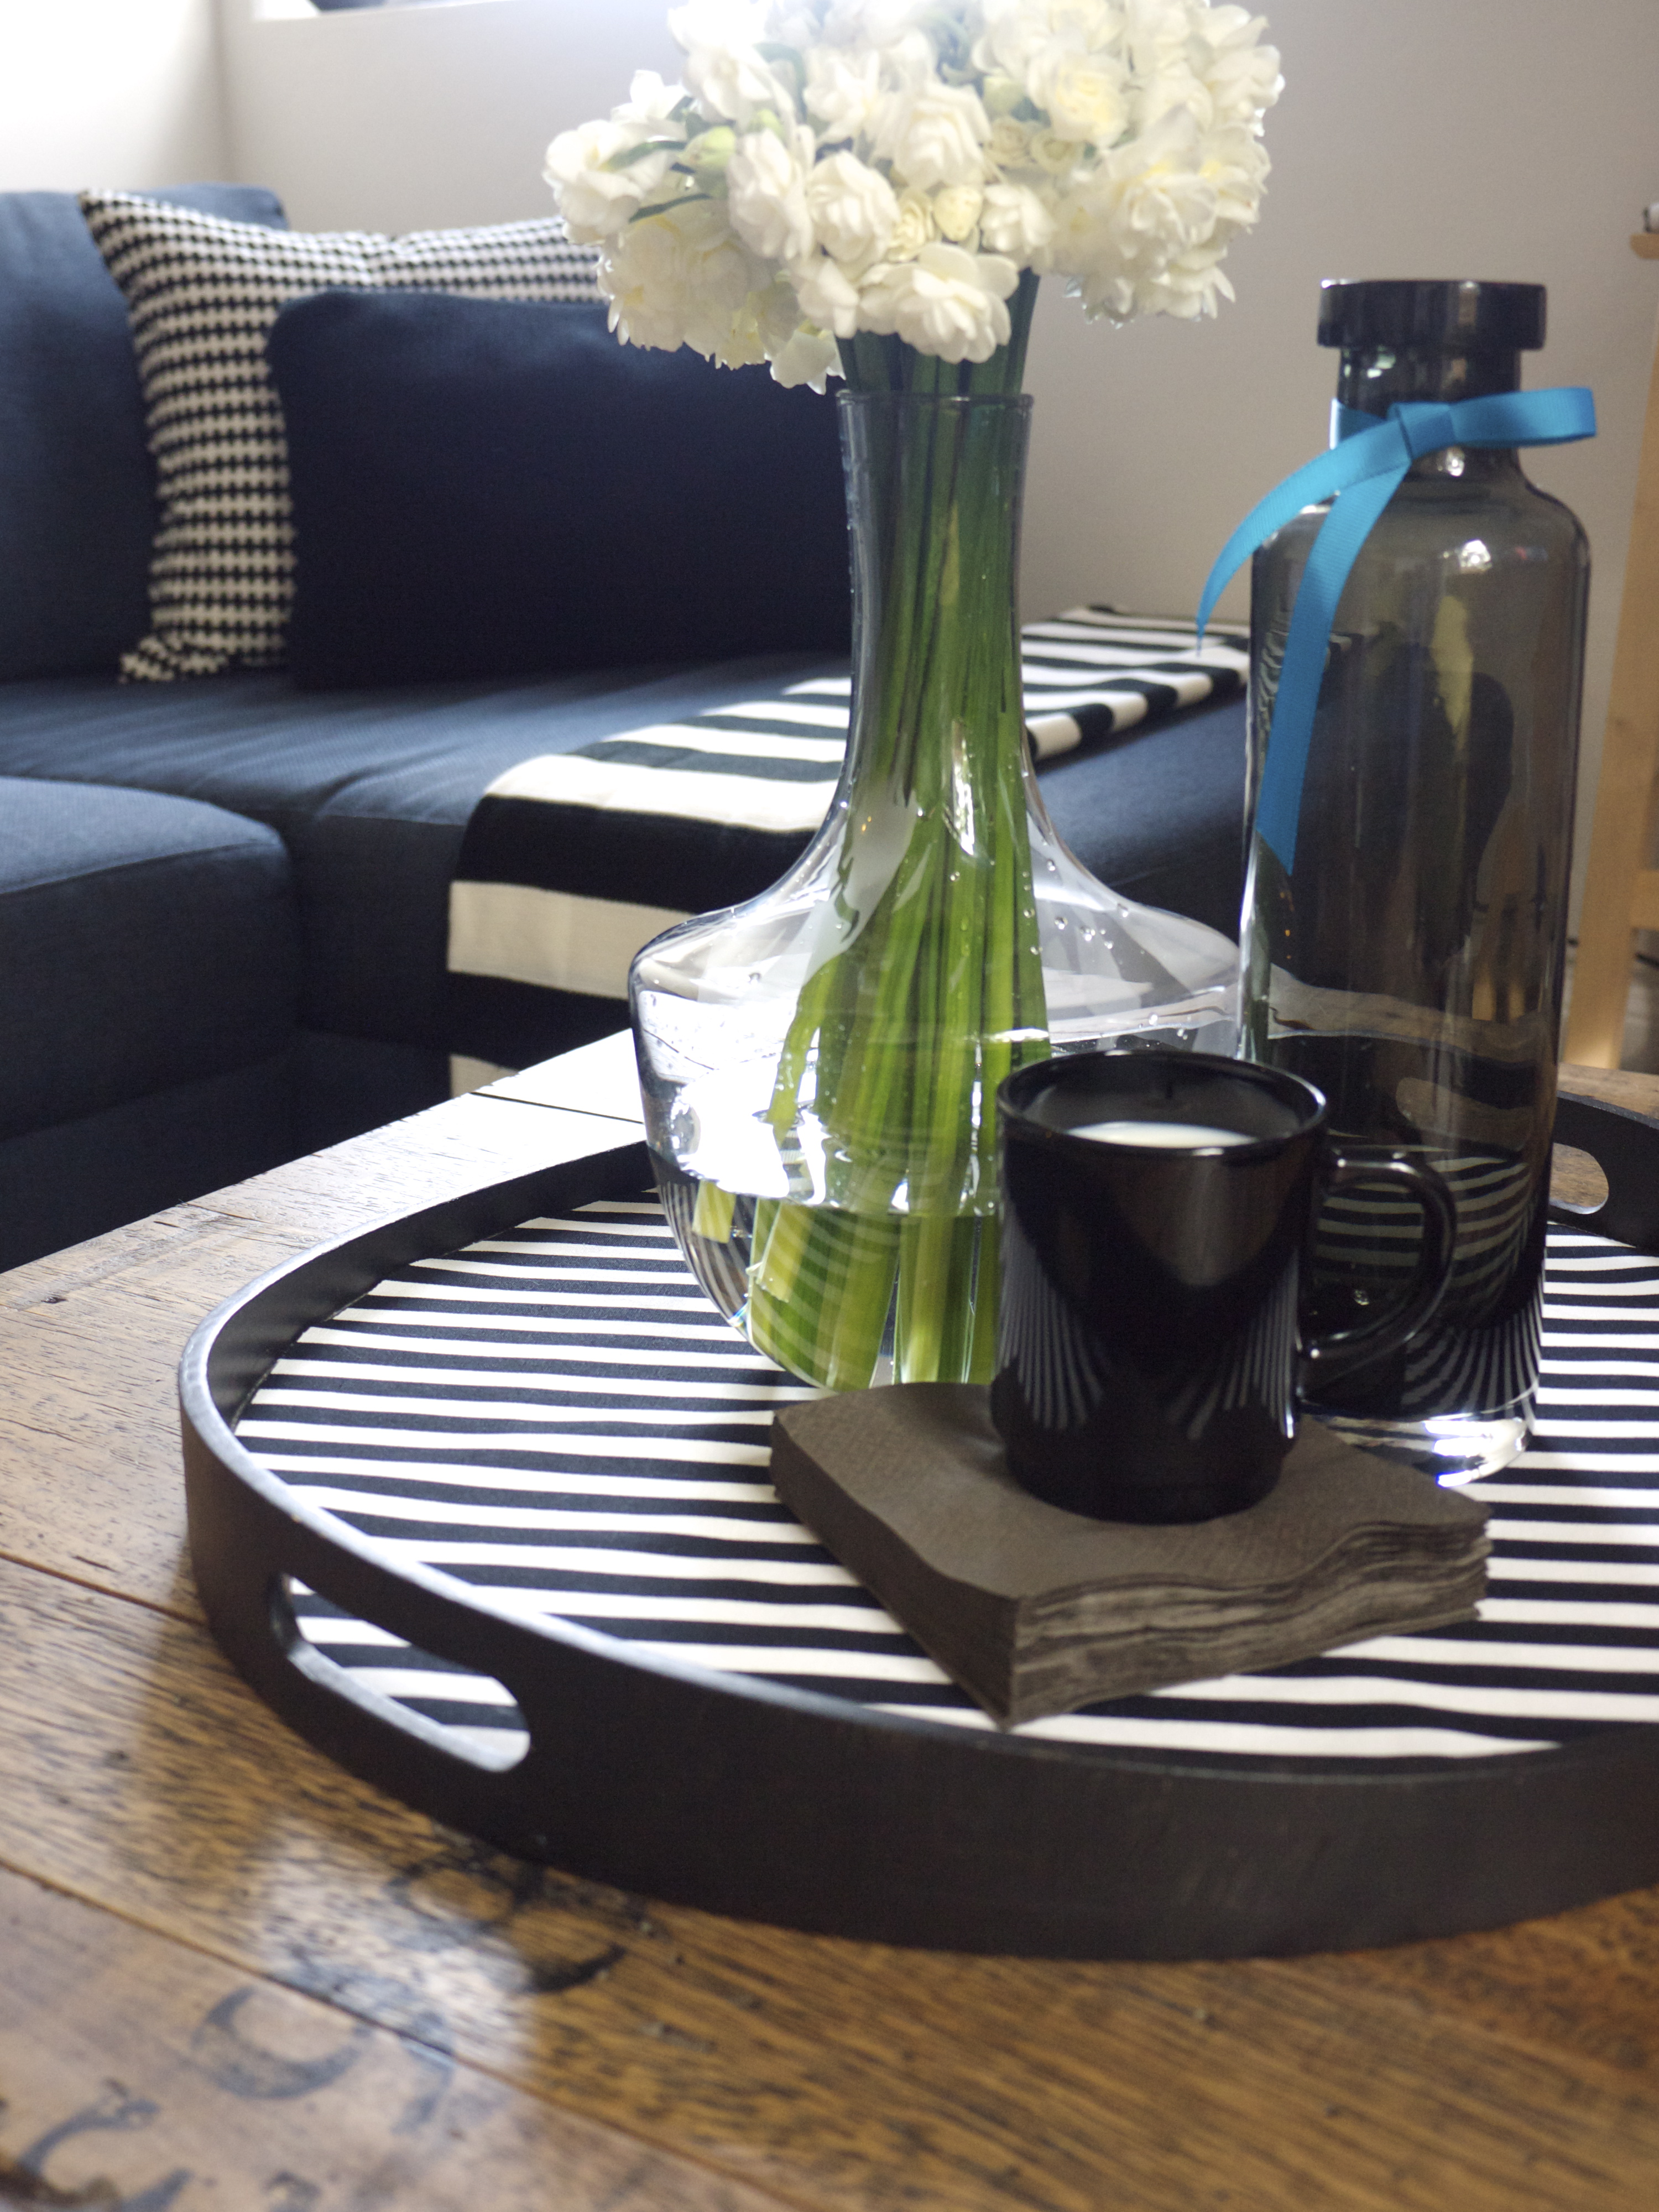 IKEA Hacks - IKEA Serving Tray Makeover - The Finished Product - Styled!